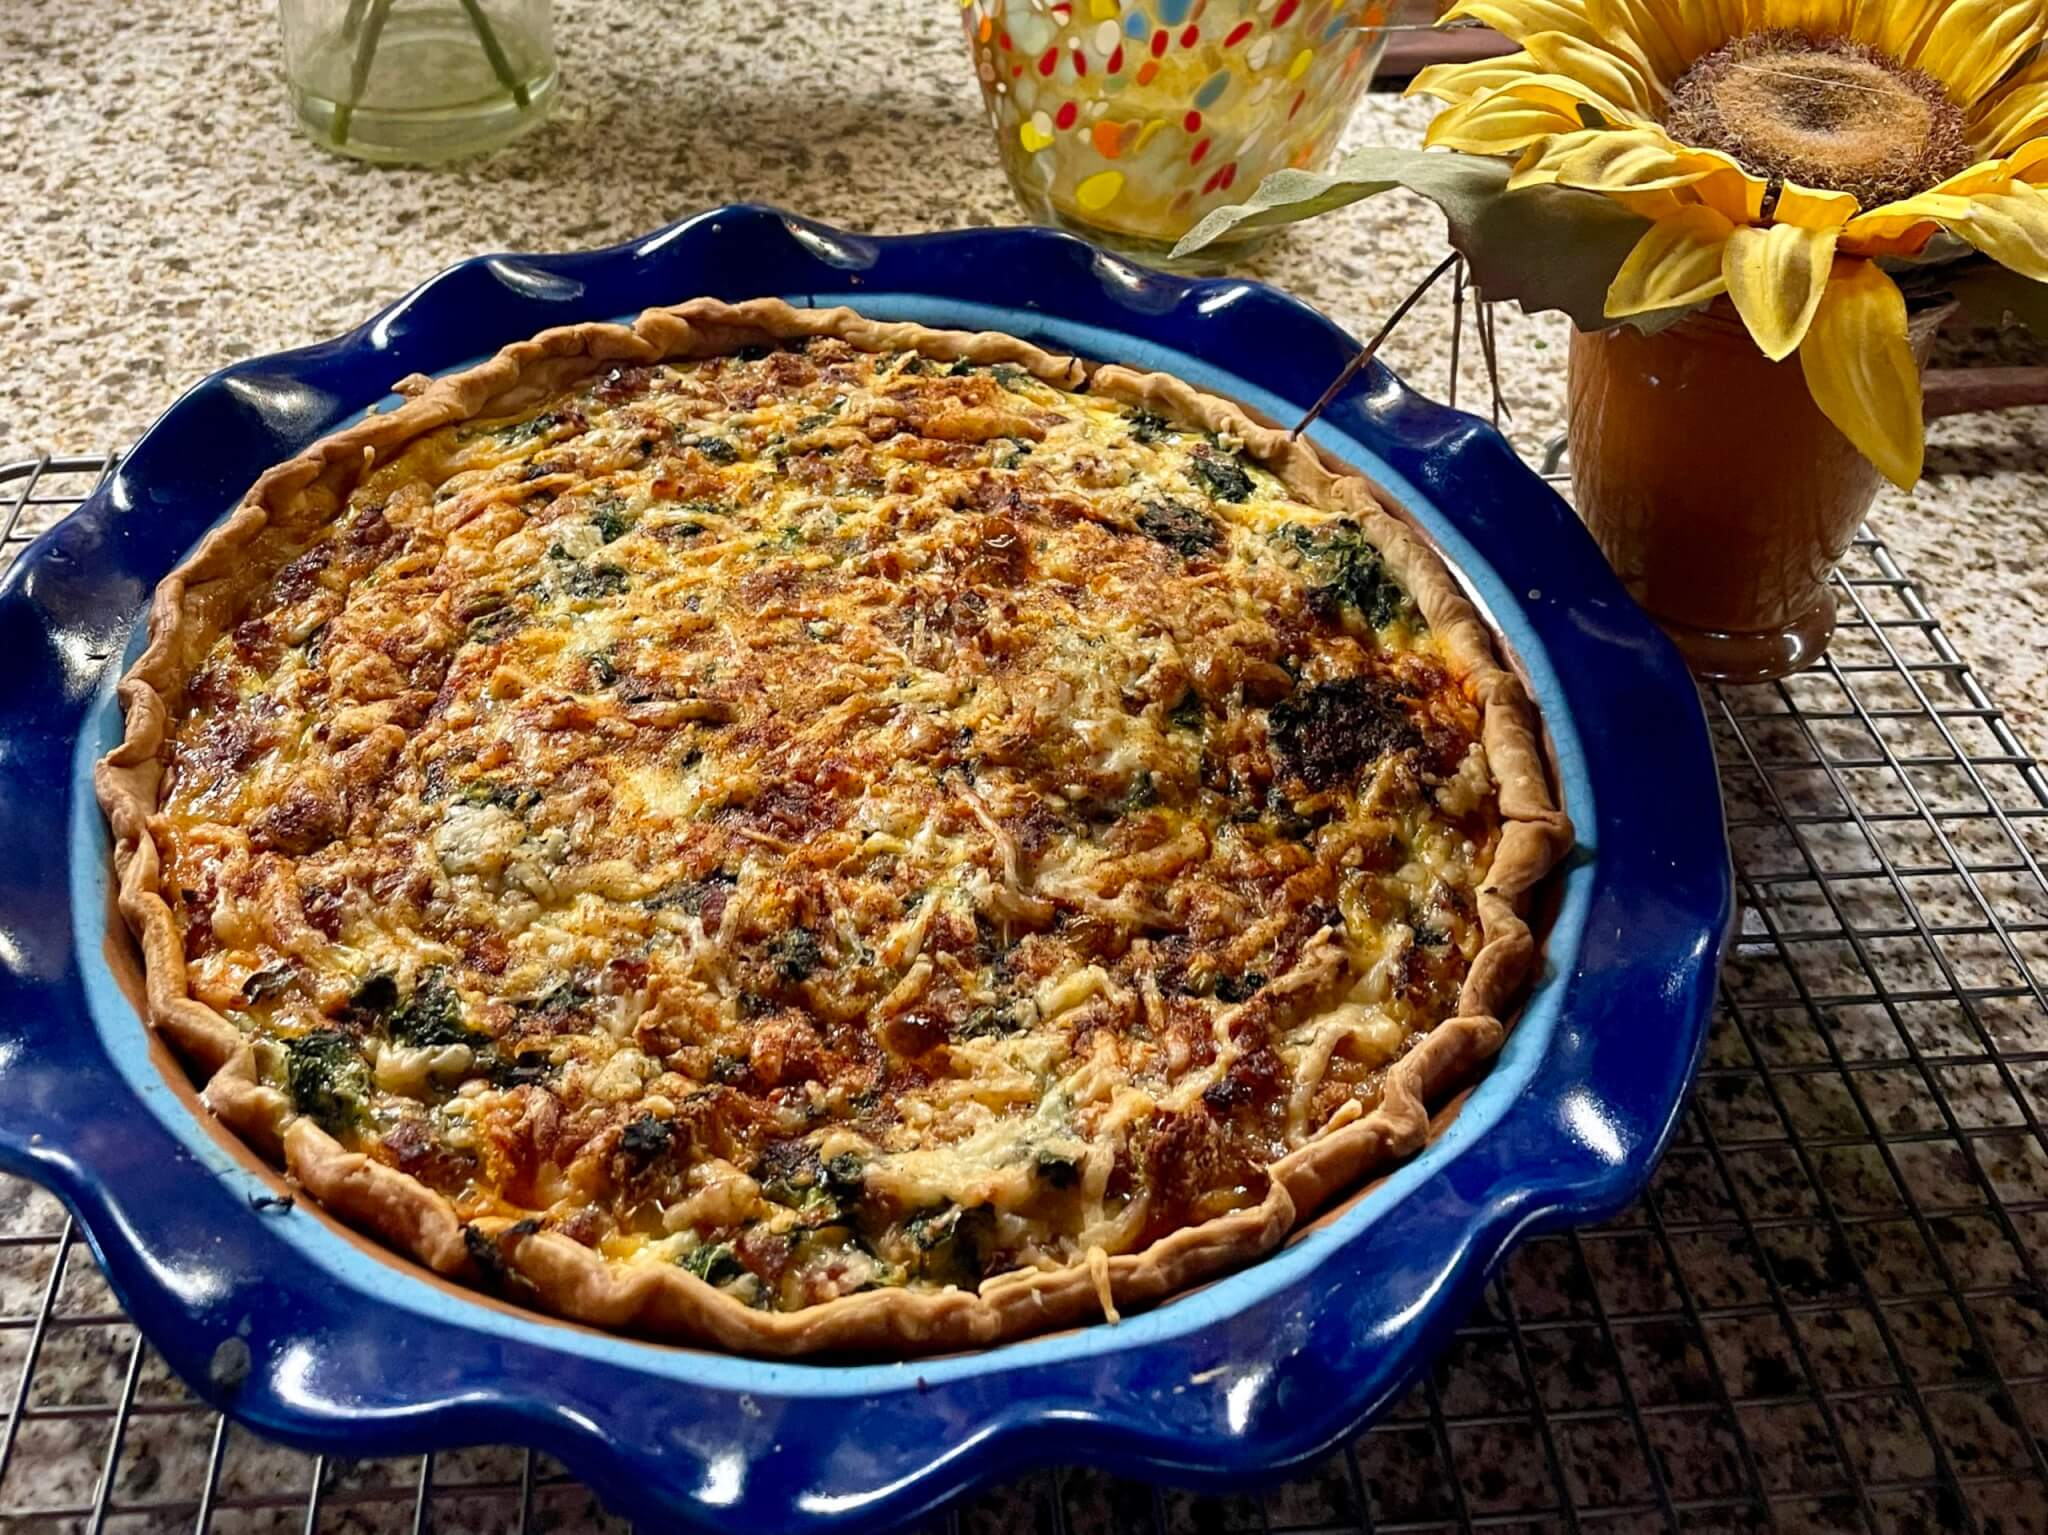 This recipe is conveniently written so you can make one quiche now and freeze half of the filling for an effortless meal another night. Or you can make both at the same time. The crowd-pleasing recipe is also ideal when you'd like to take a meal to a friend in need.